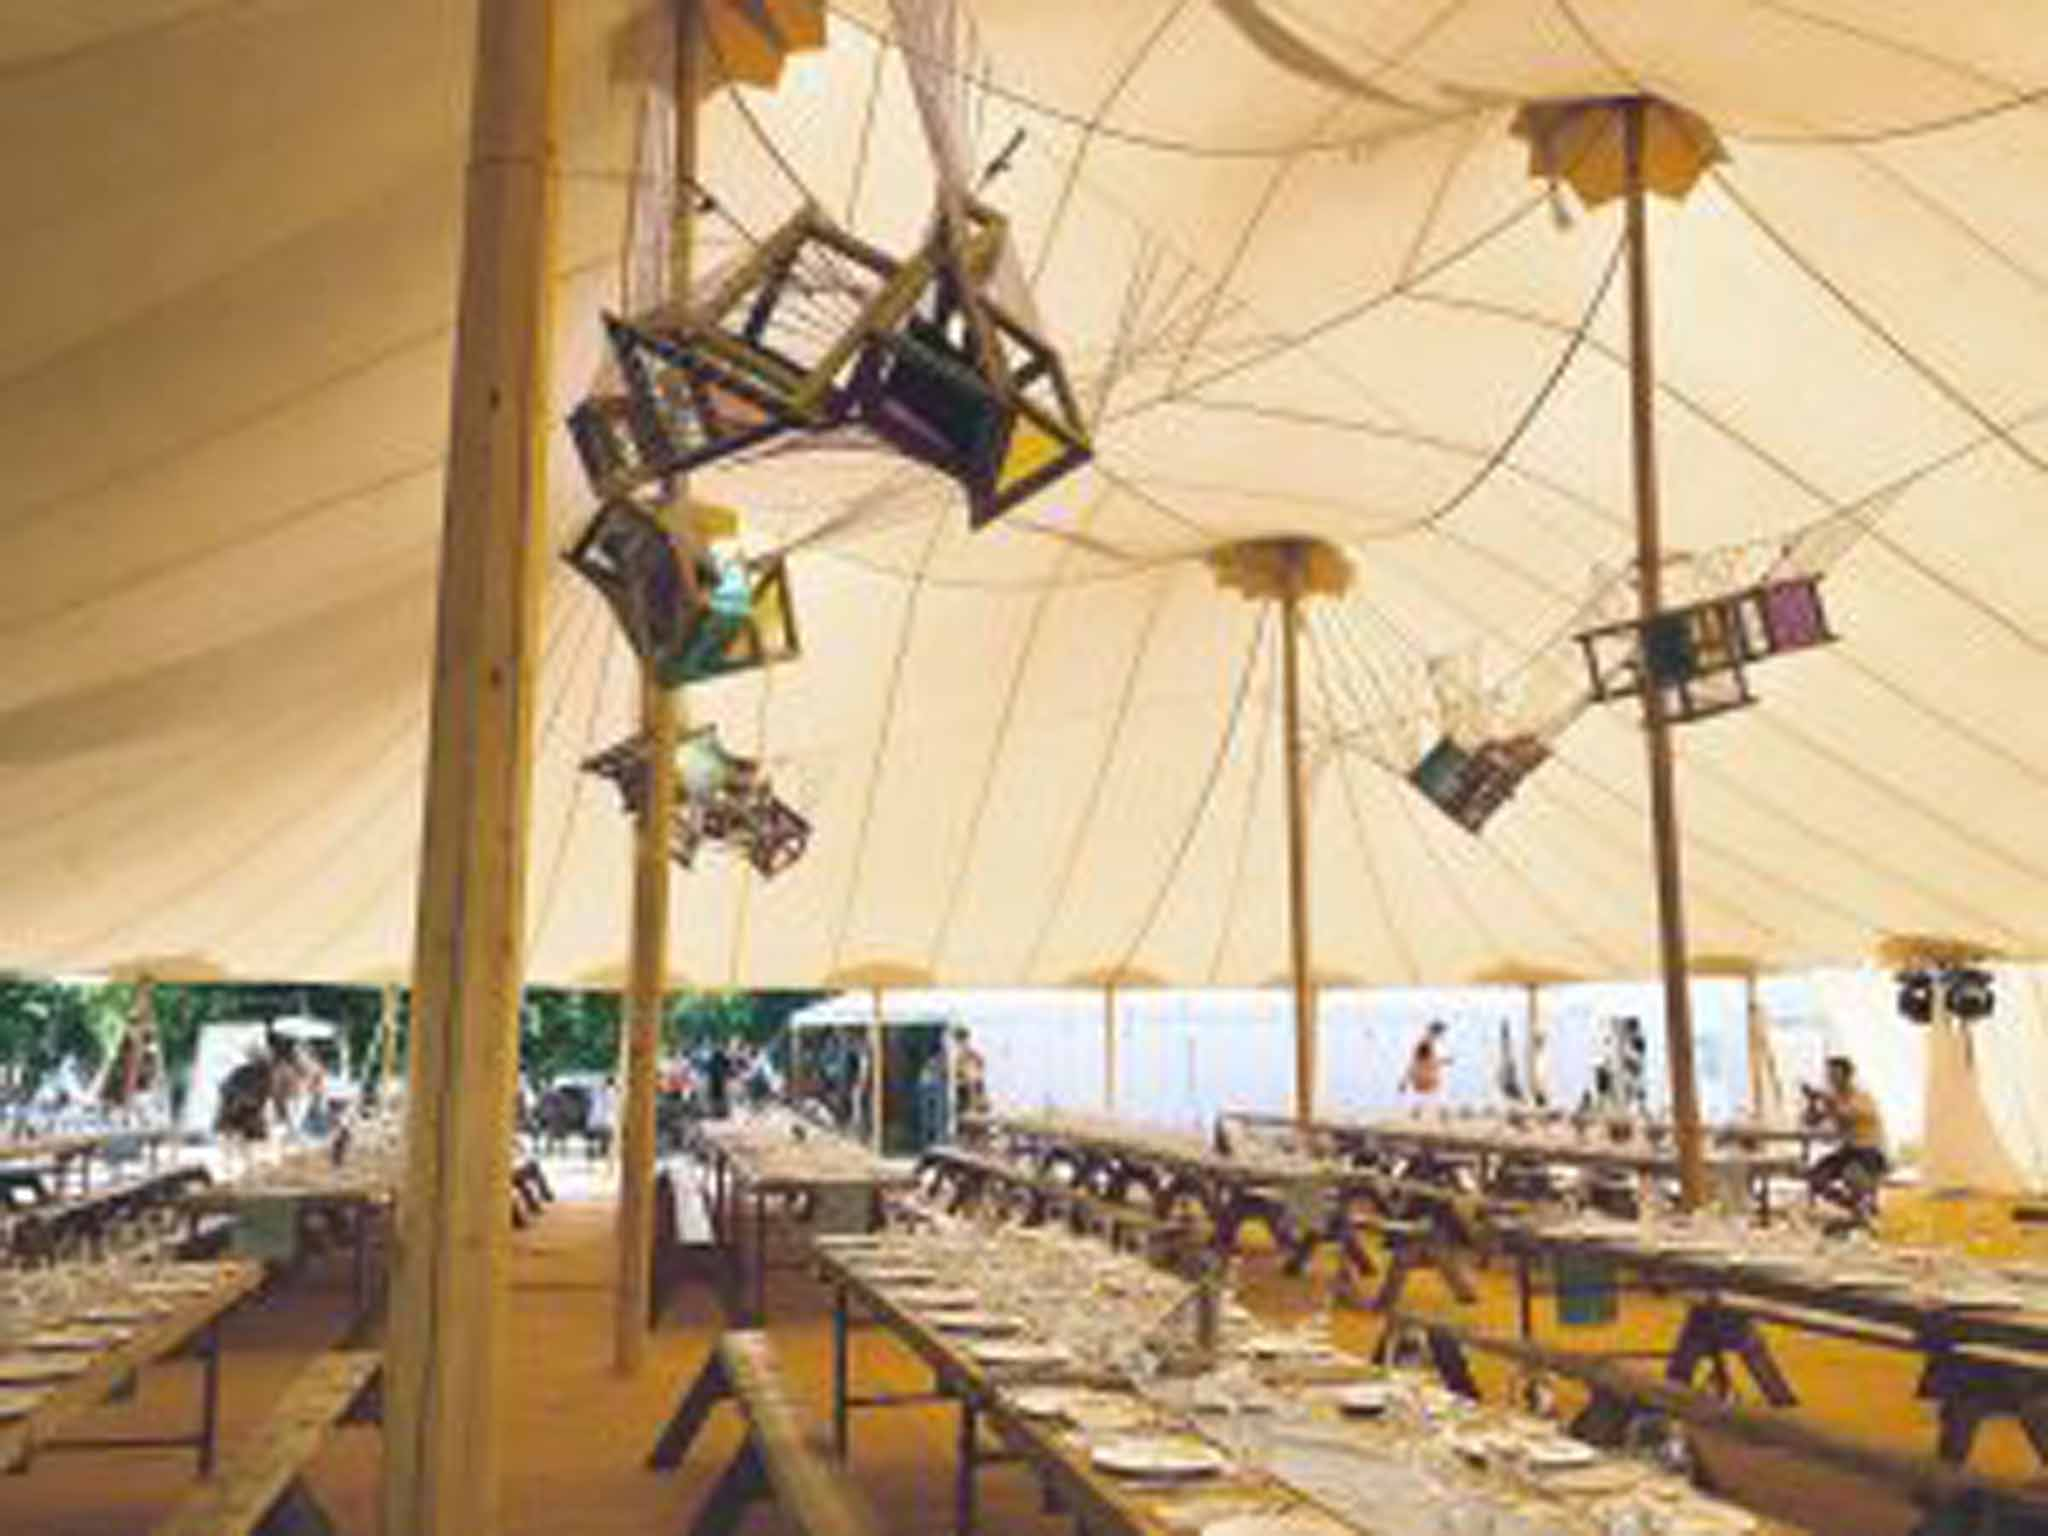 thumbnail image for Wilderness Banquet Tent